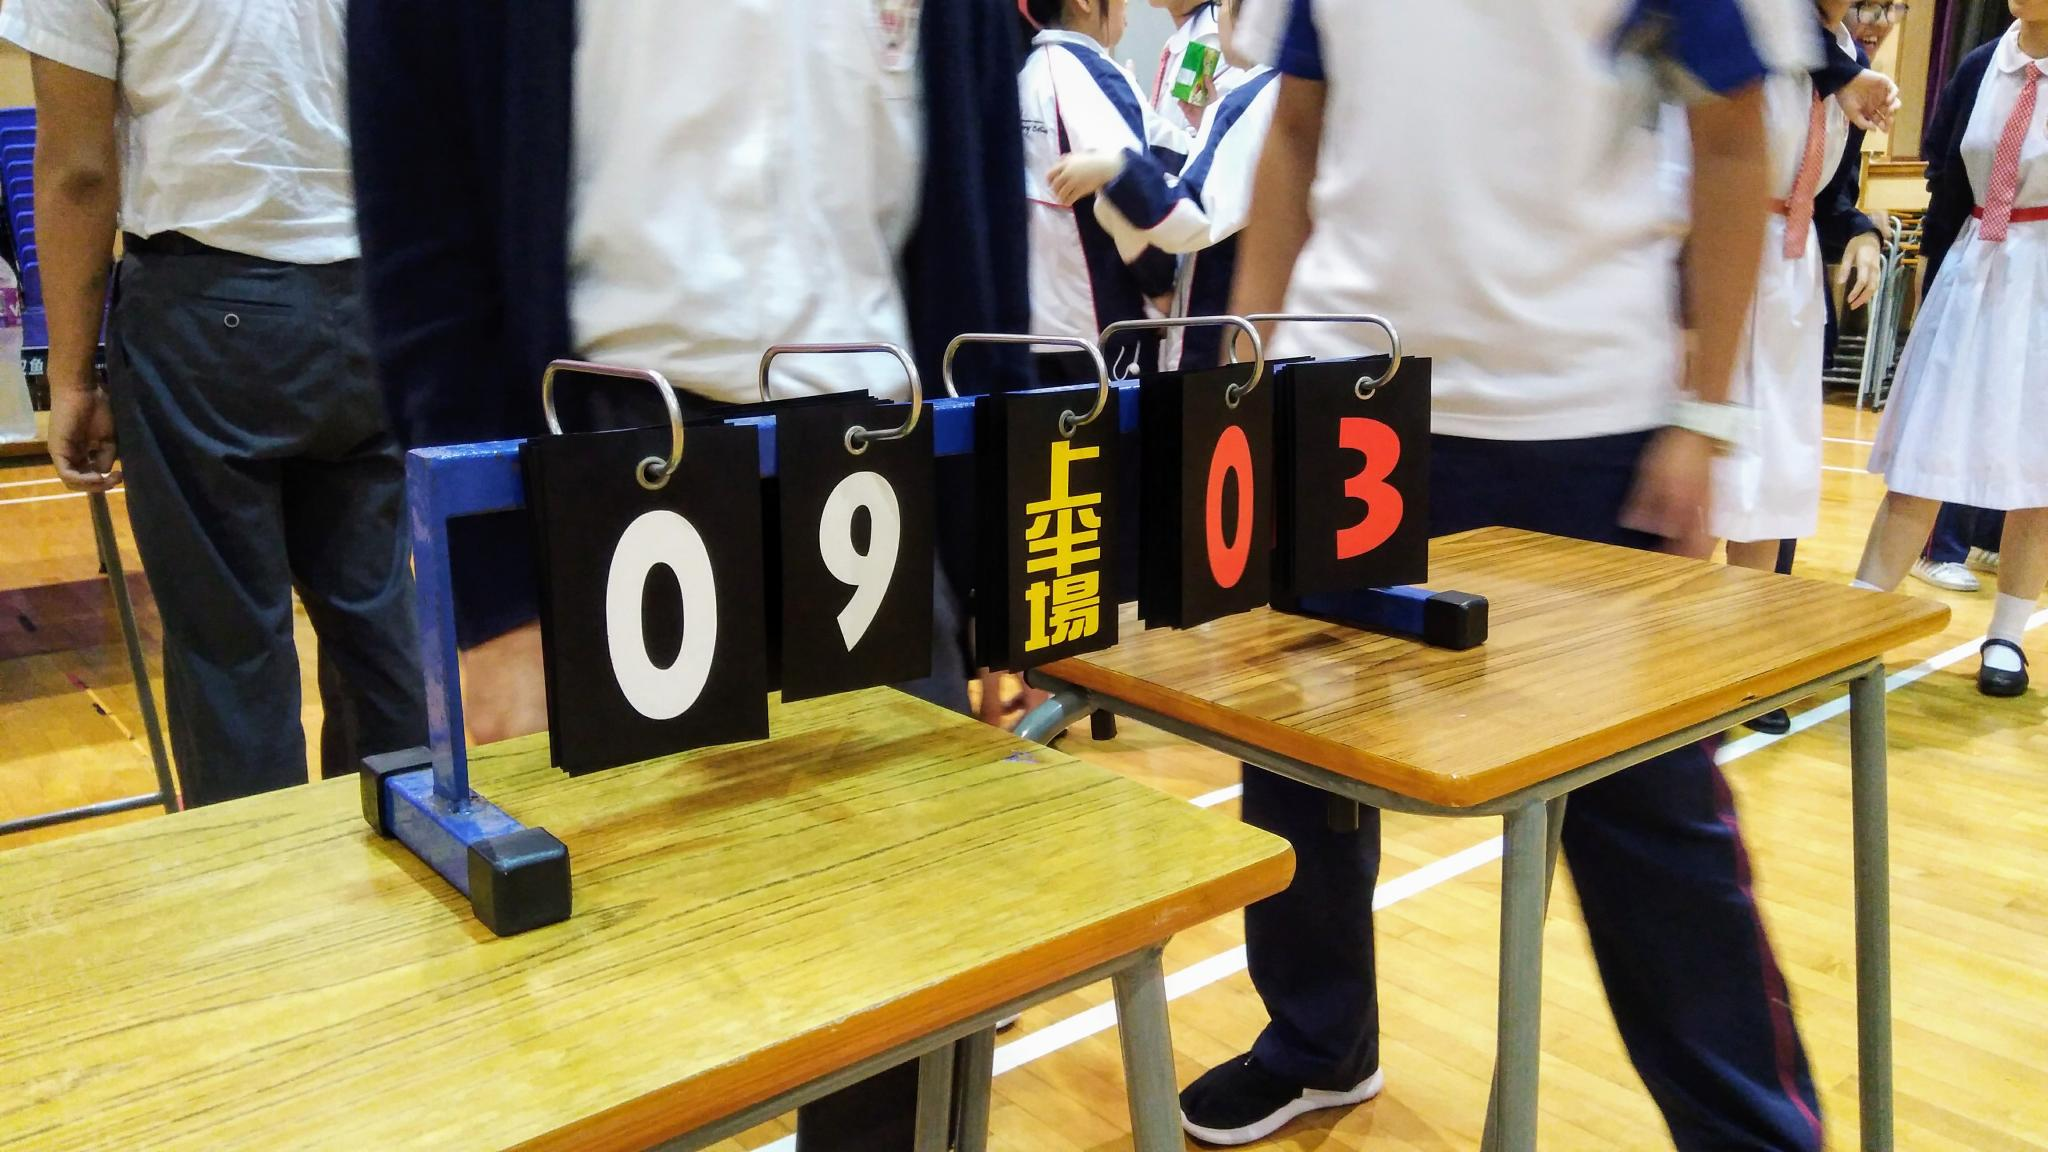 The students are having an exciting game.